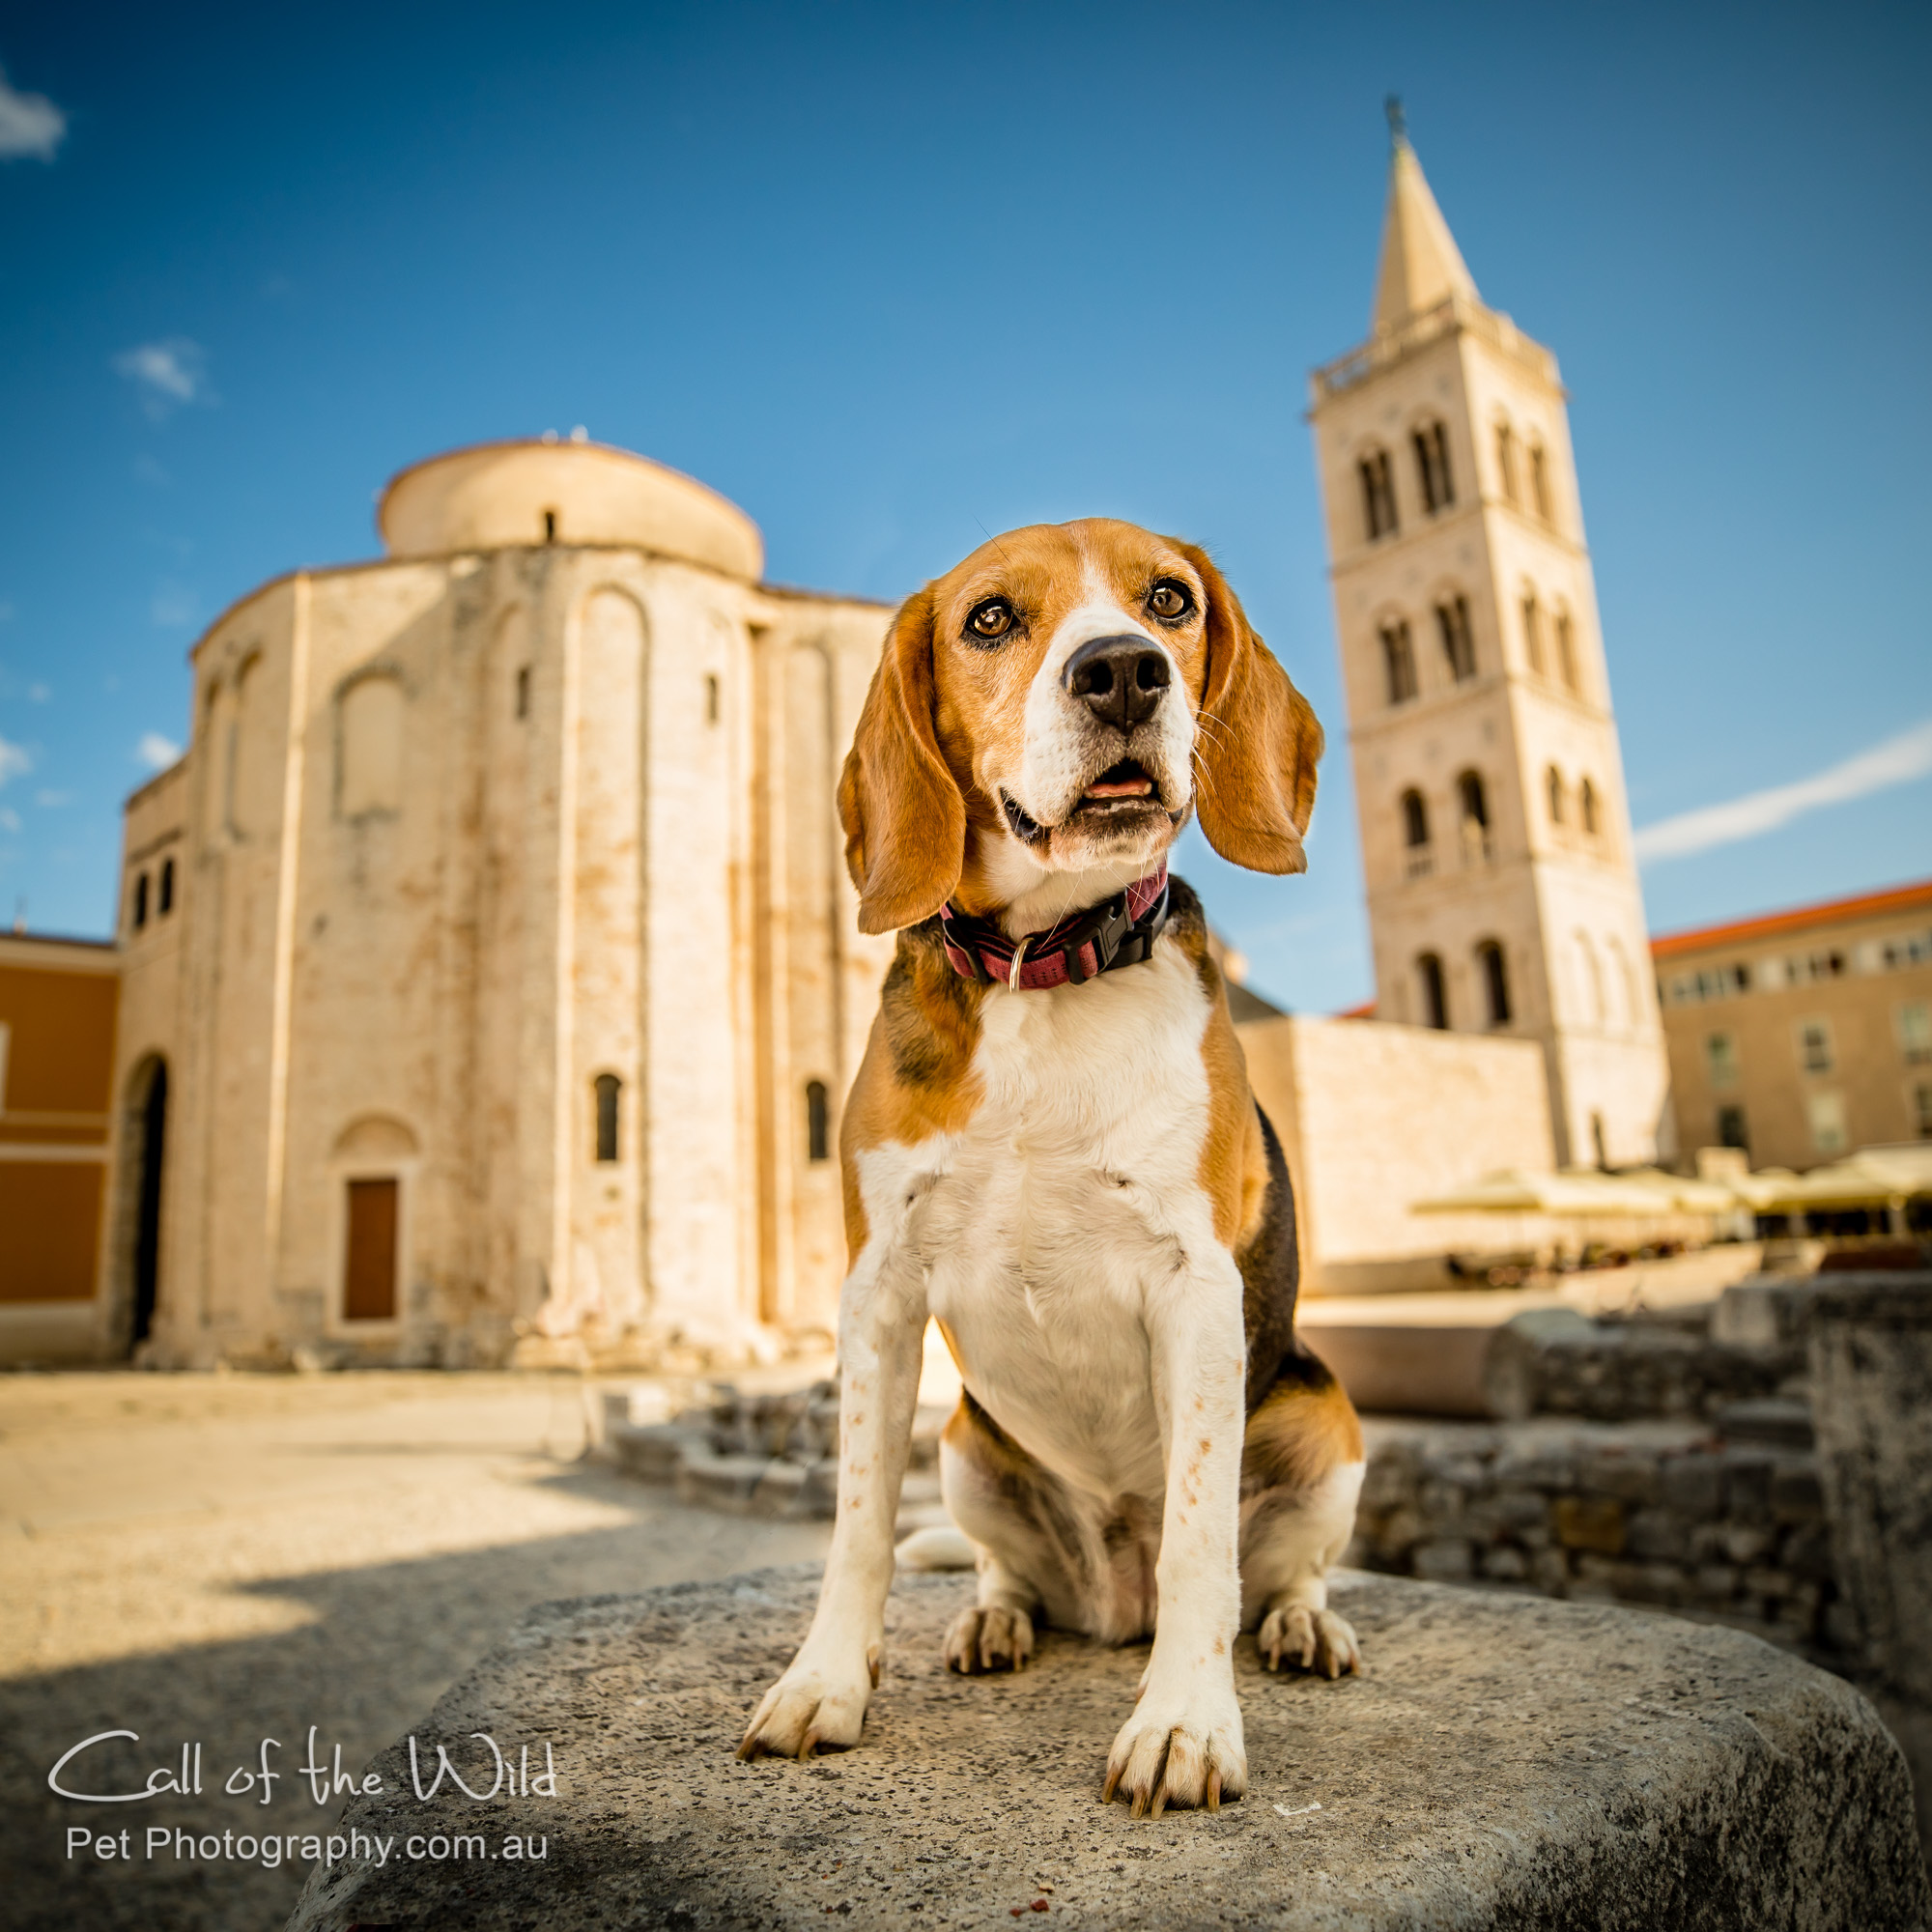 Lilly the Beagle from Croatia